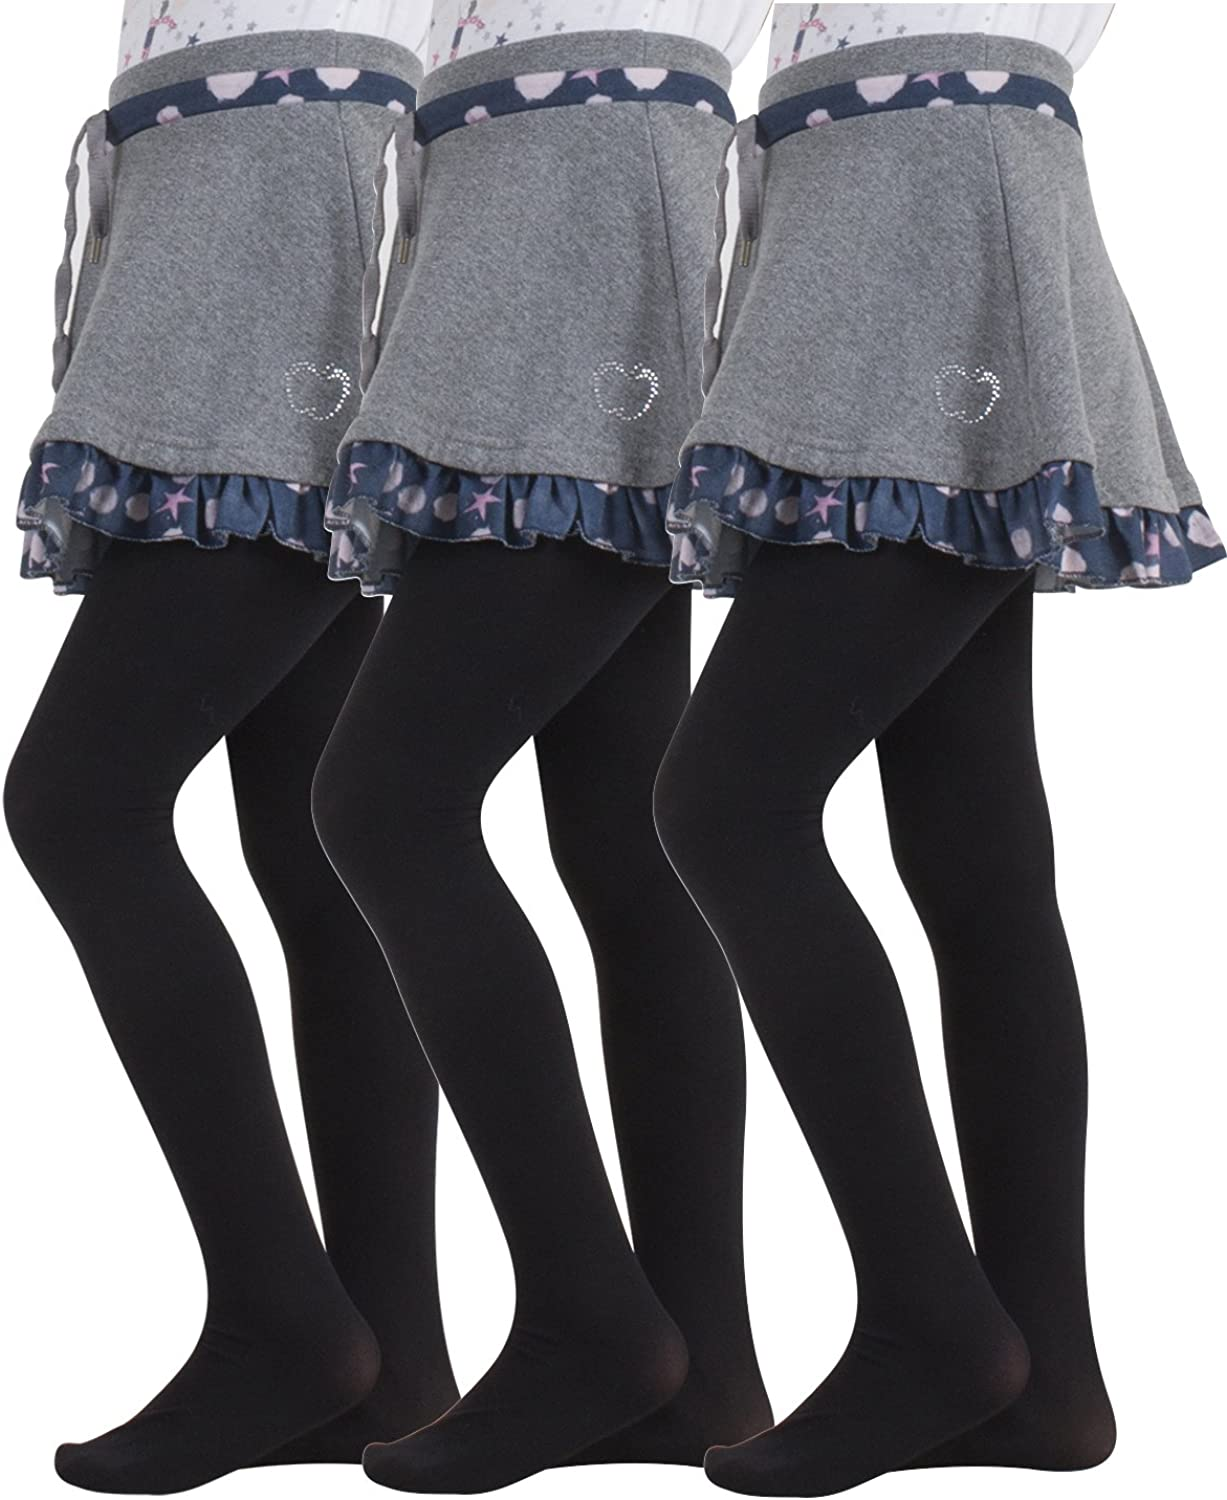 3 PAIRS CHILDREN'S PANTYHOSE   PANTYHOSE SCHOOL UNIFORM   40 DEN   2-14 YEARS   MADE IN ITALY